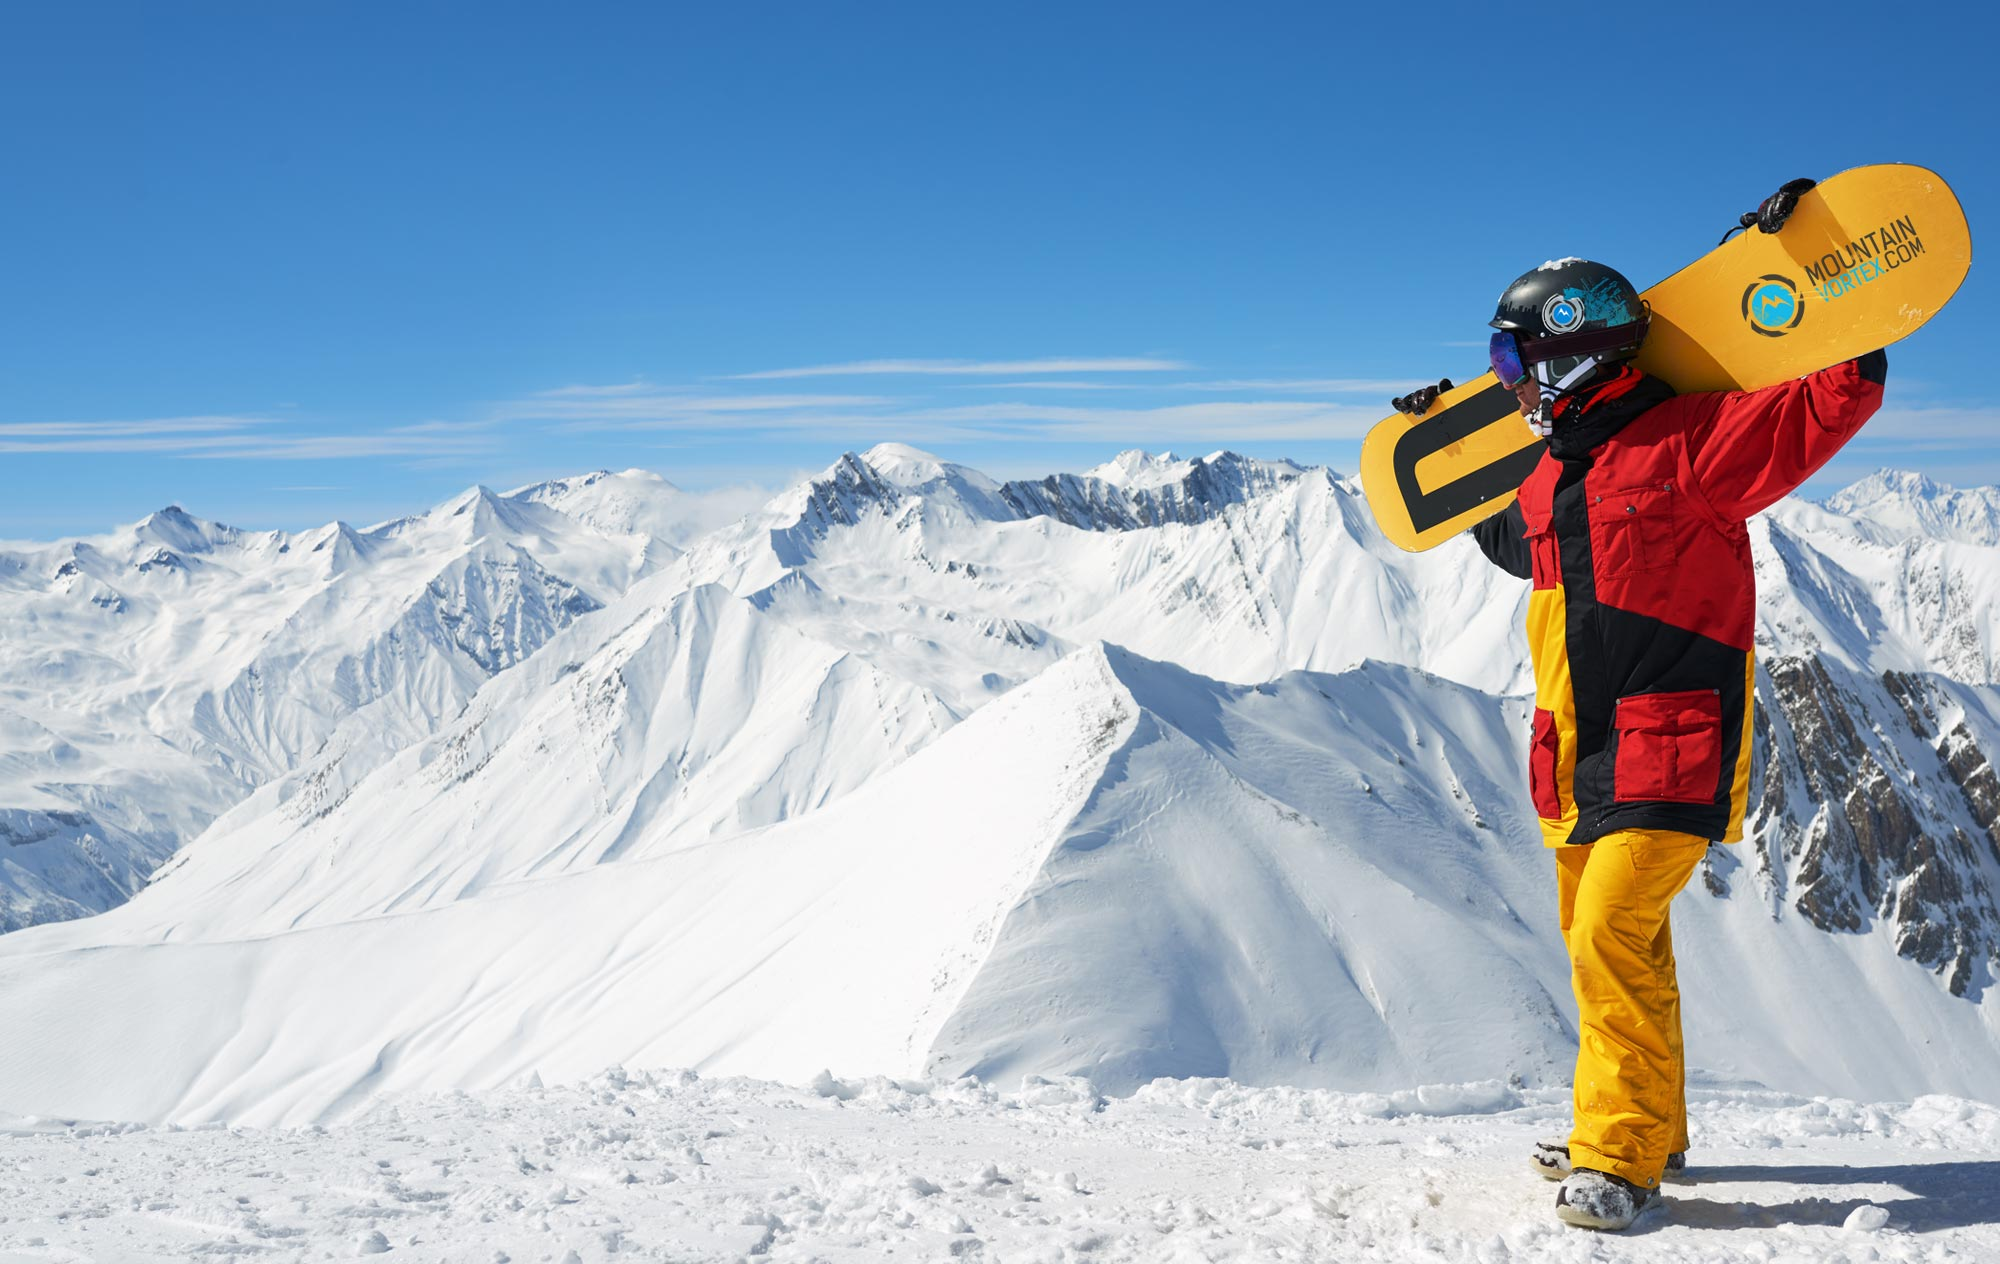 Mountain Vortex snowboarder holds snowboard over his shoulders